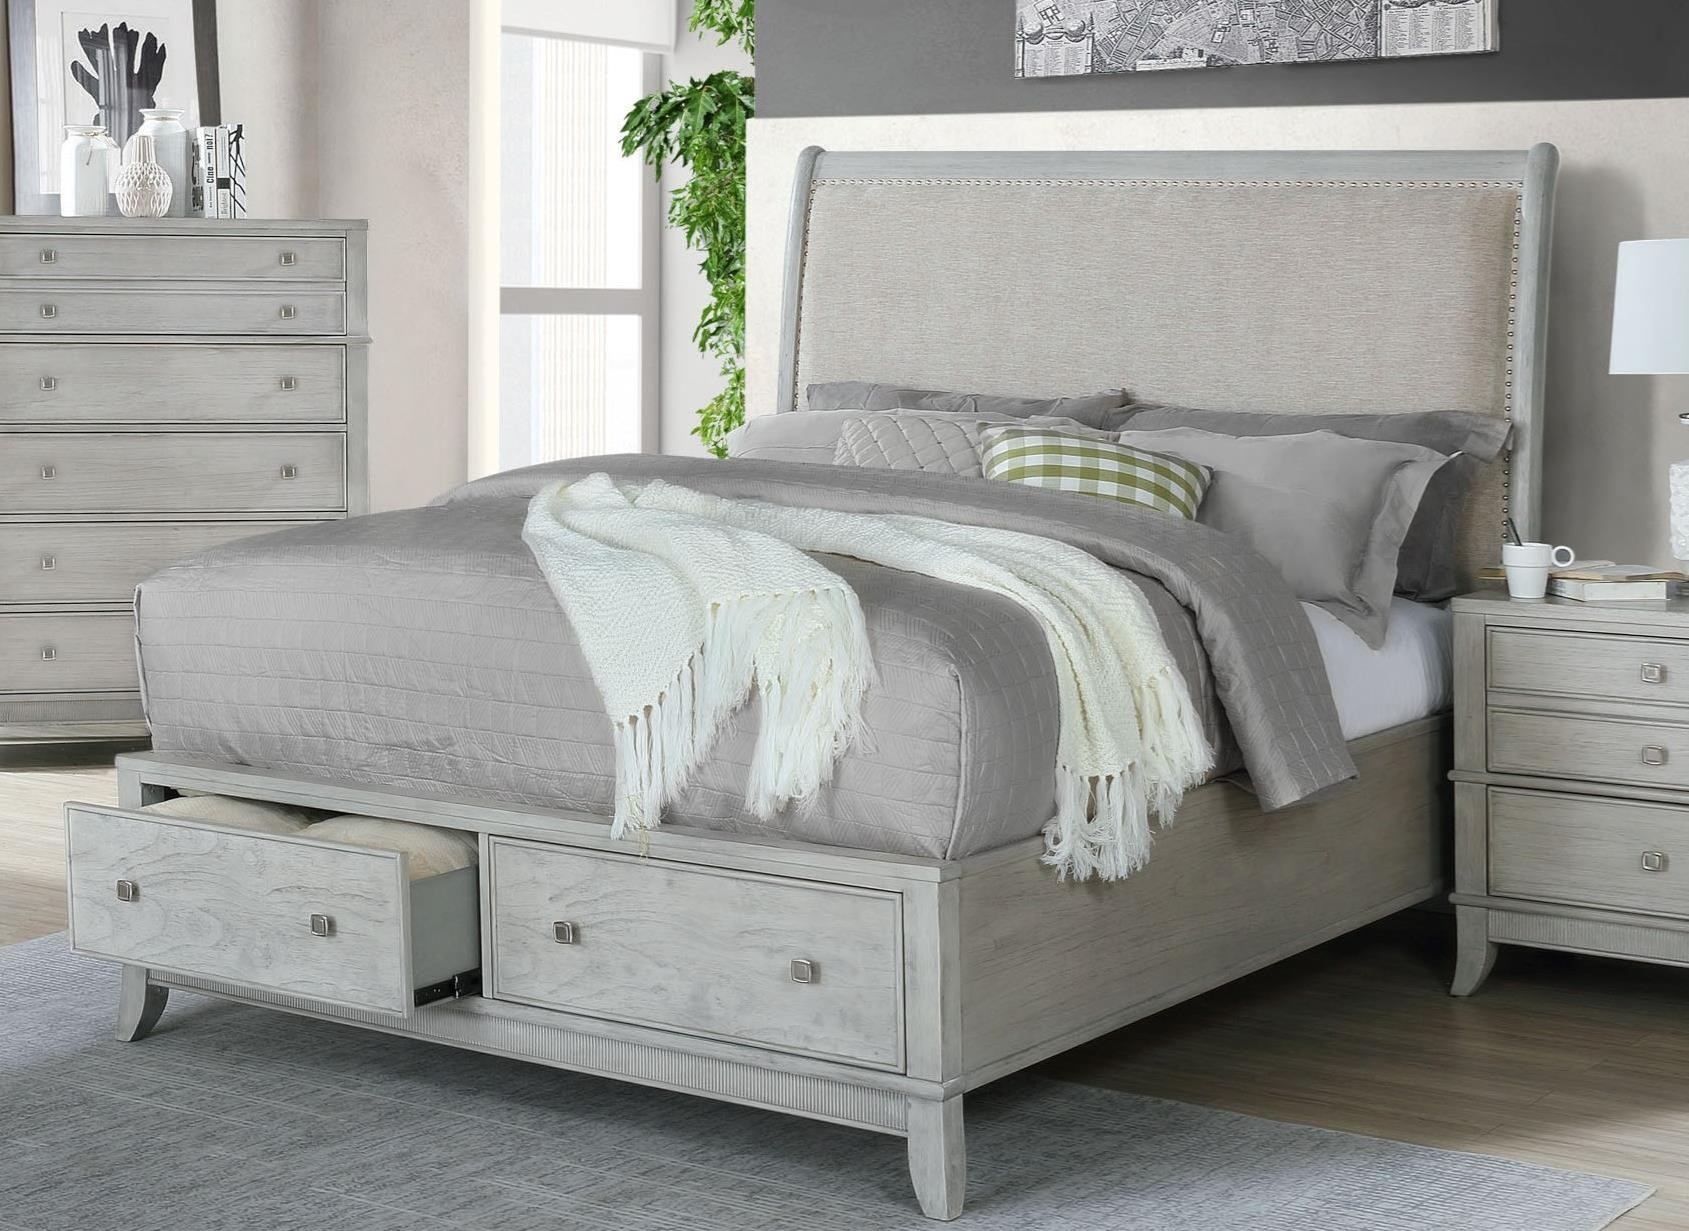 B00191 King Upholstered Sleigh Bed by Avalon Furniture at Household Furniture